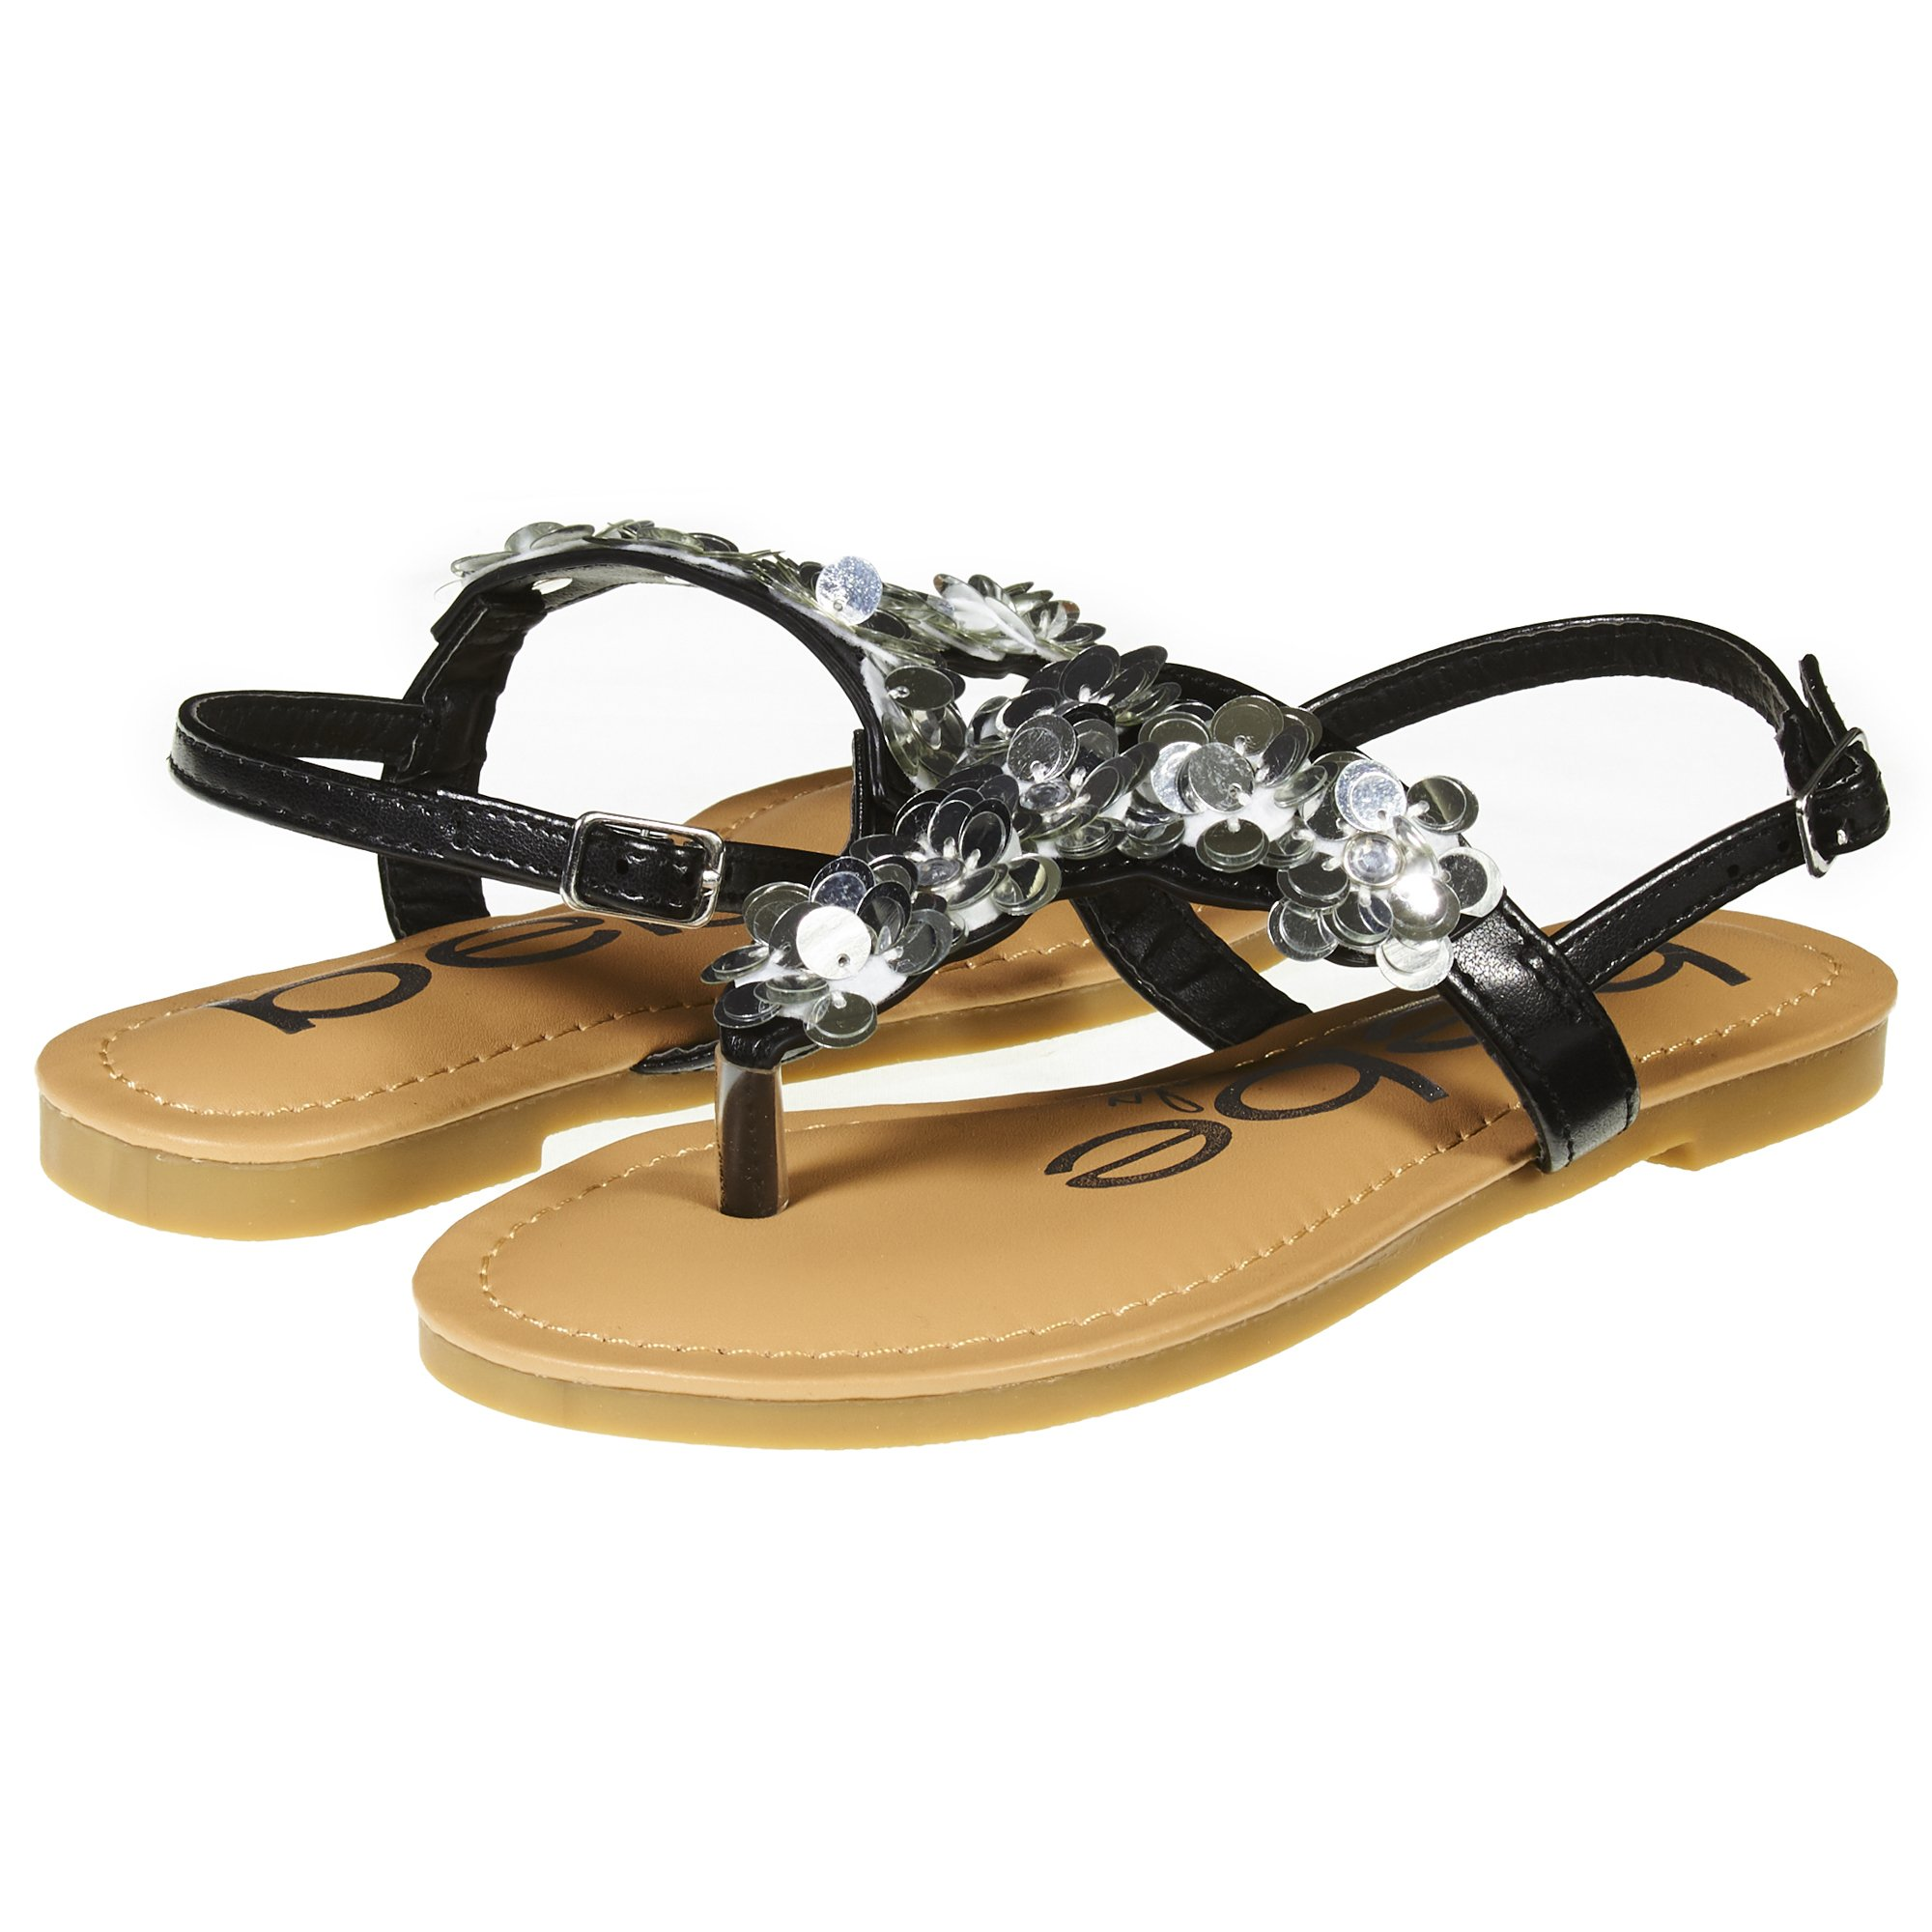 bebe Girls Big Kid Summer Flat Slingback Sandals T Strap Thong Shoes with Flowers Size 11 Black/Silver